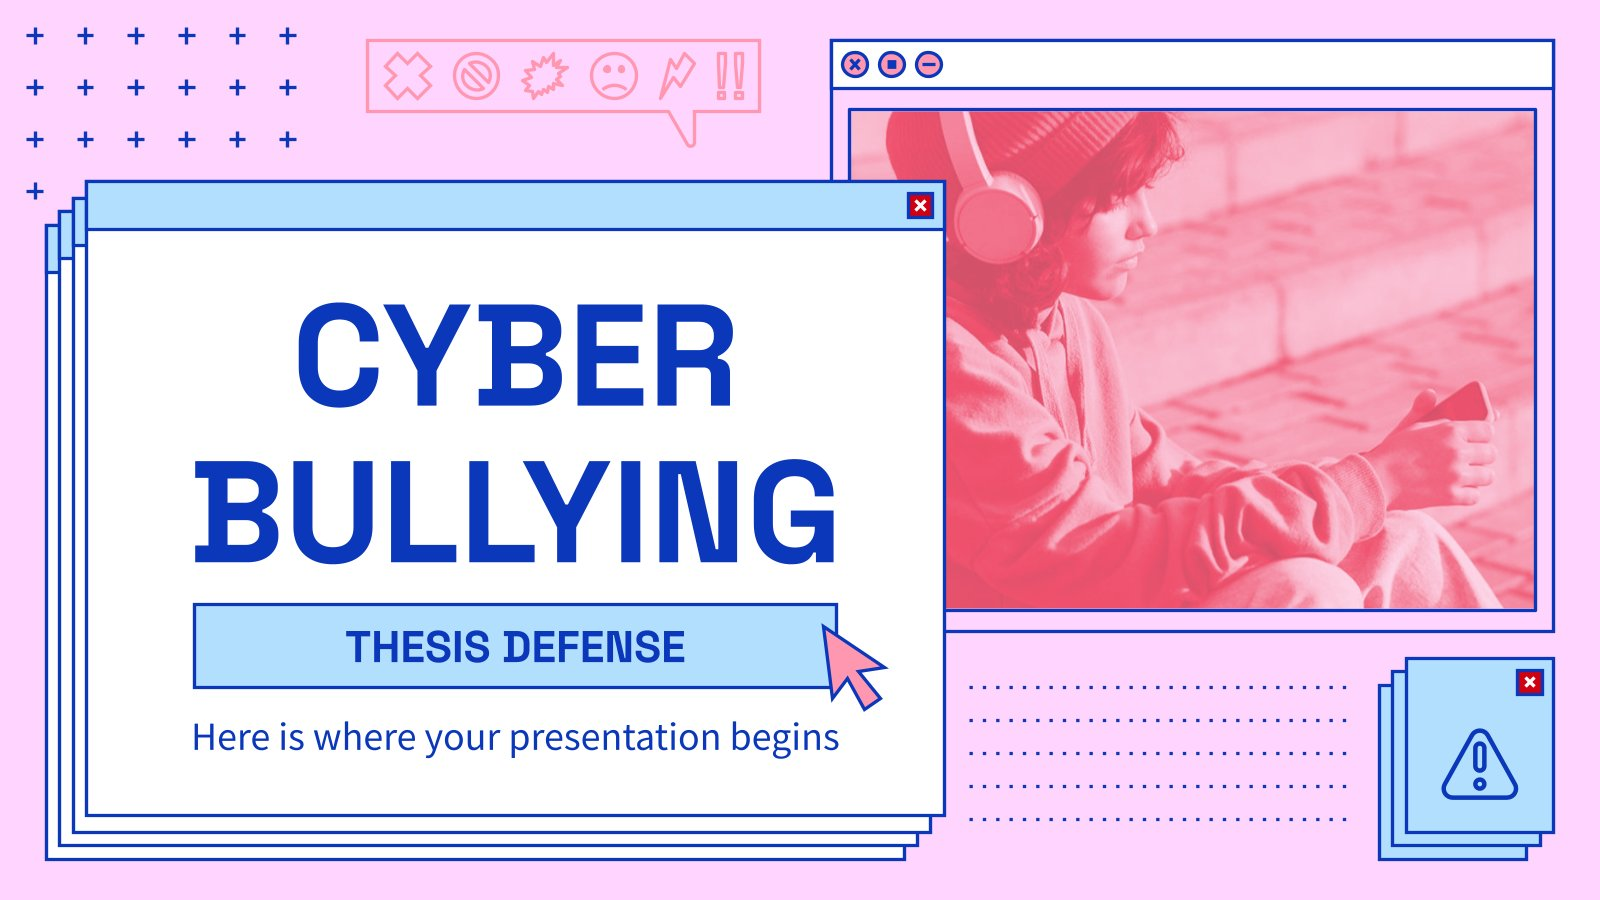 Cyber Bullying Thesis Defense presentation template